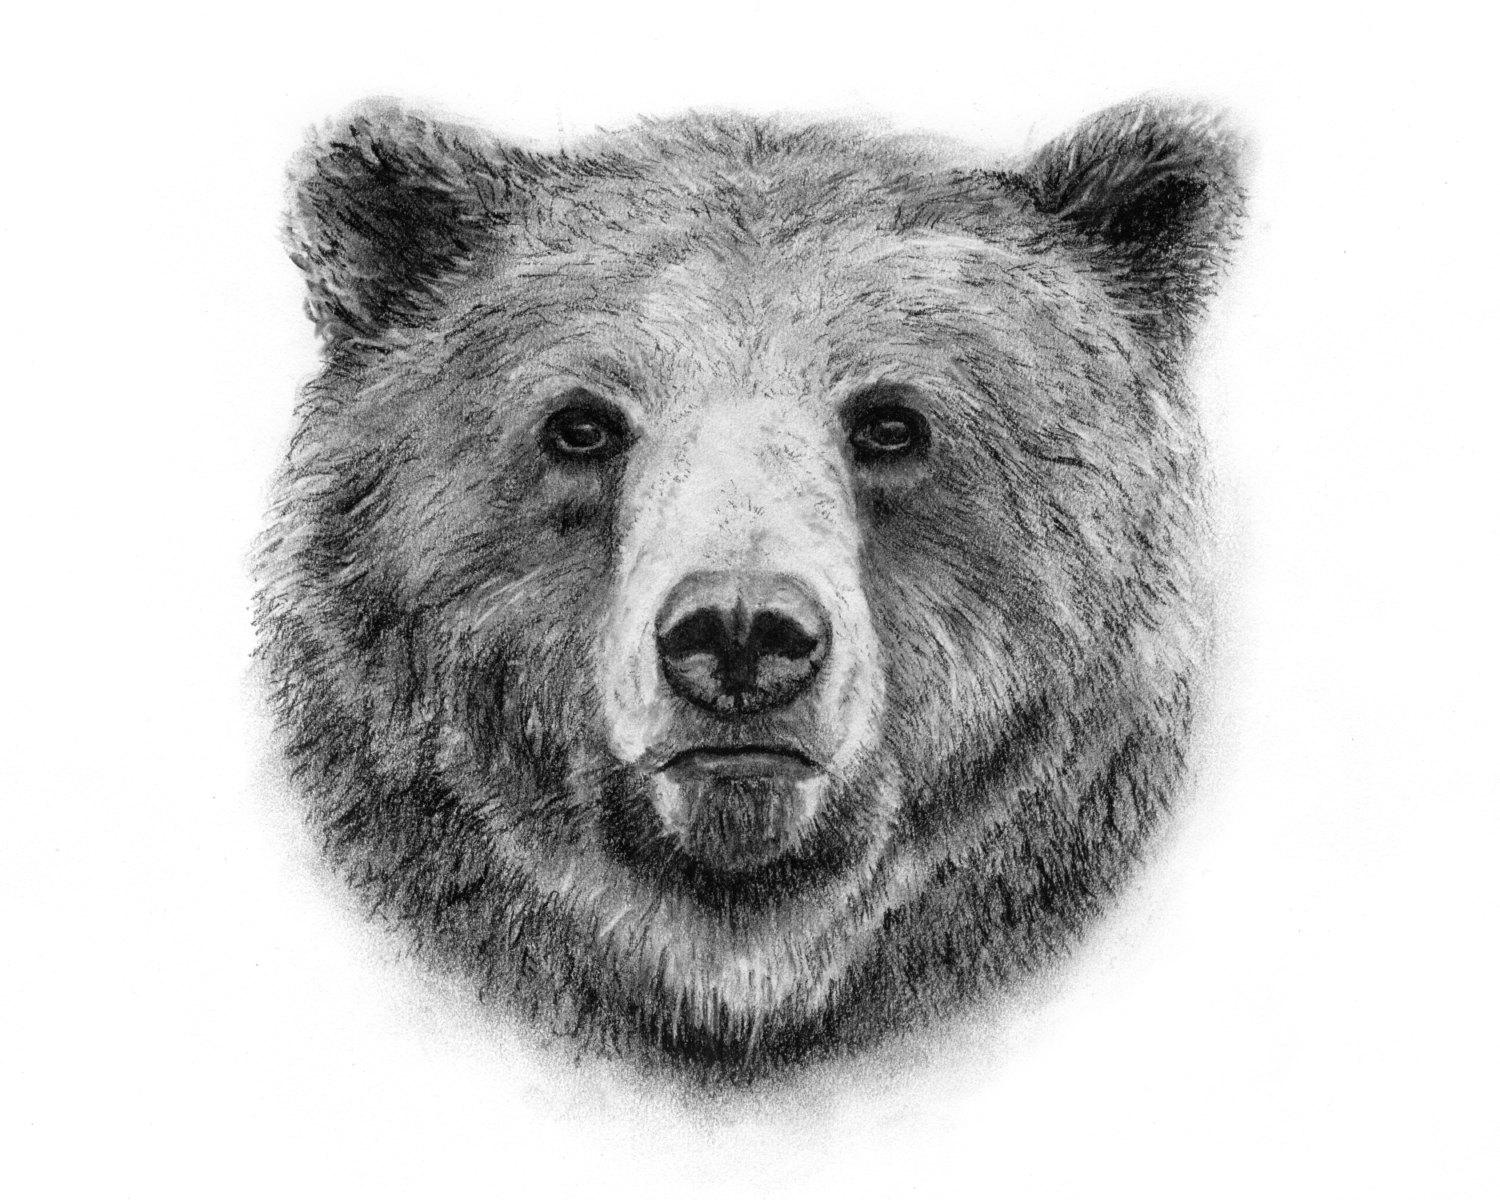 how to draw a grizzly bear face grizzly bear charcoal drawing giclee print animal portrait grizzly face a bear to how draw